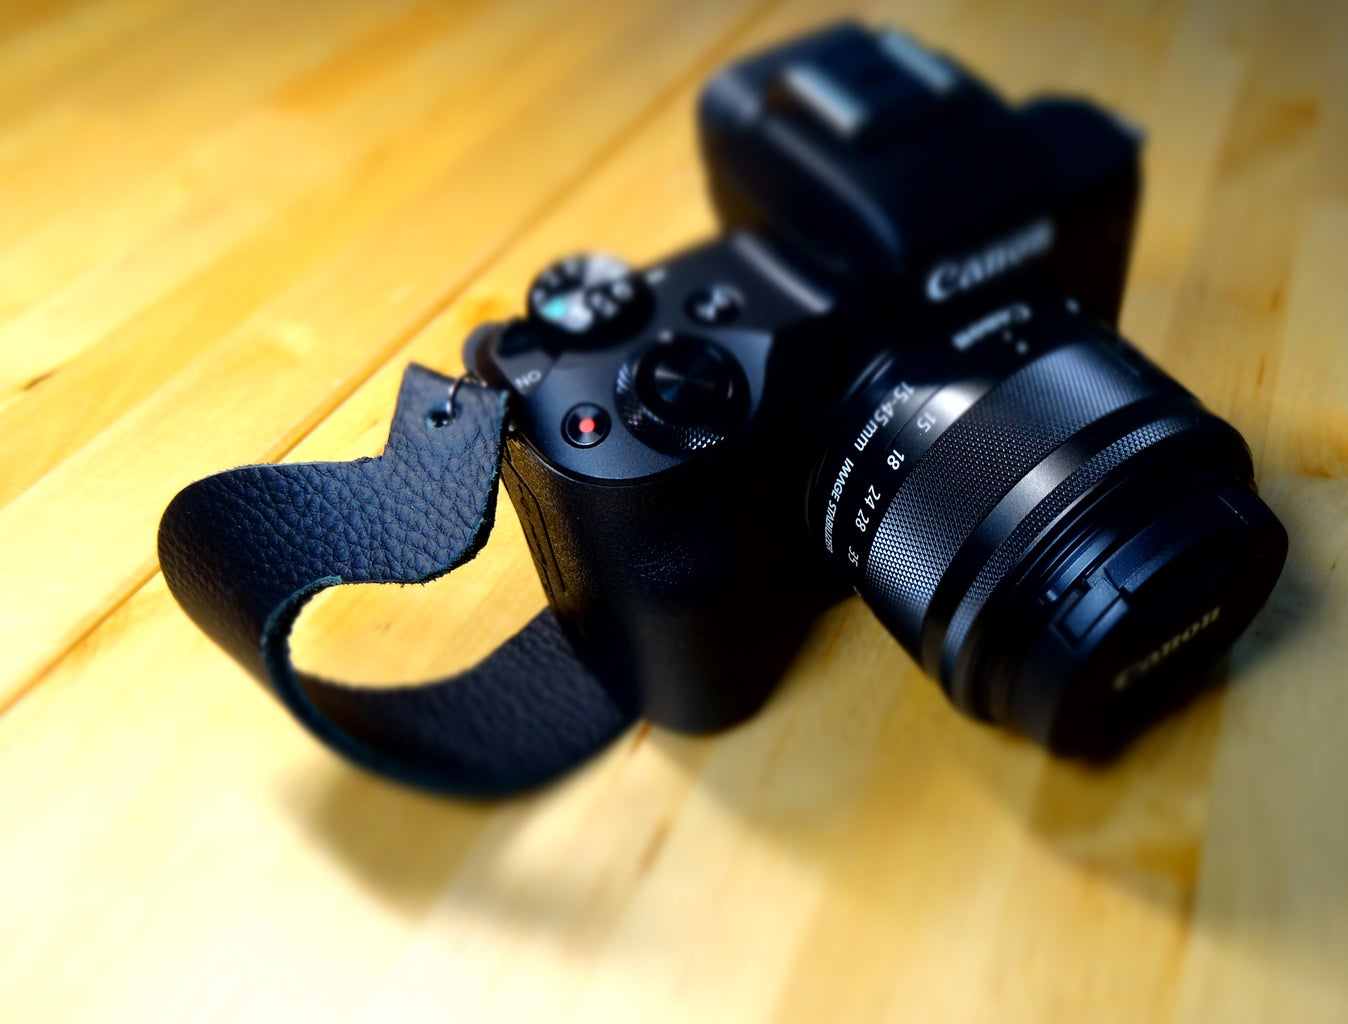 DIY Hand Strap for My New Camera